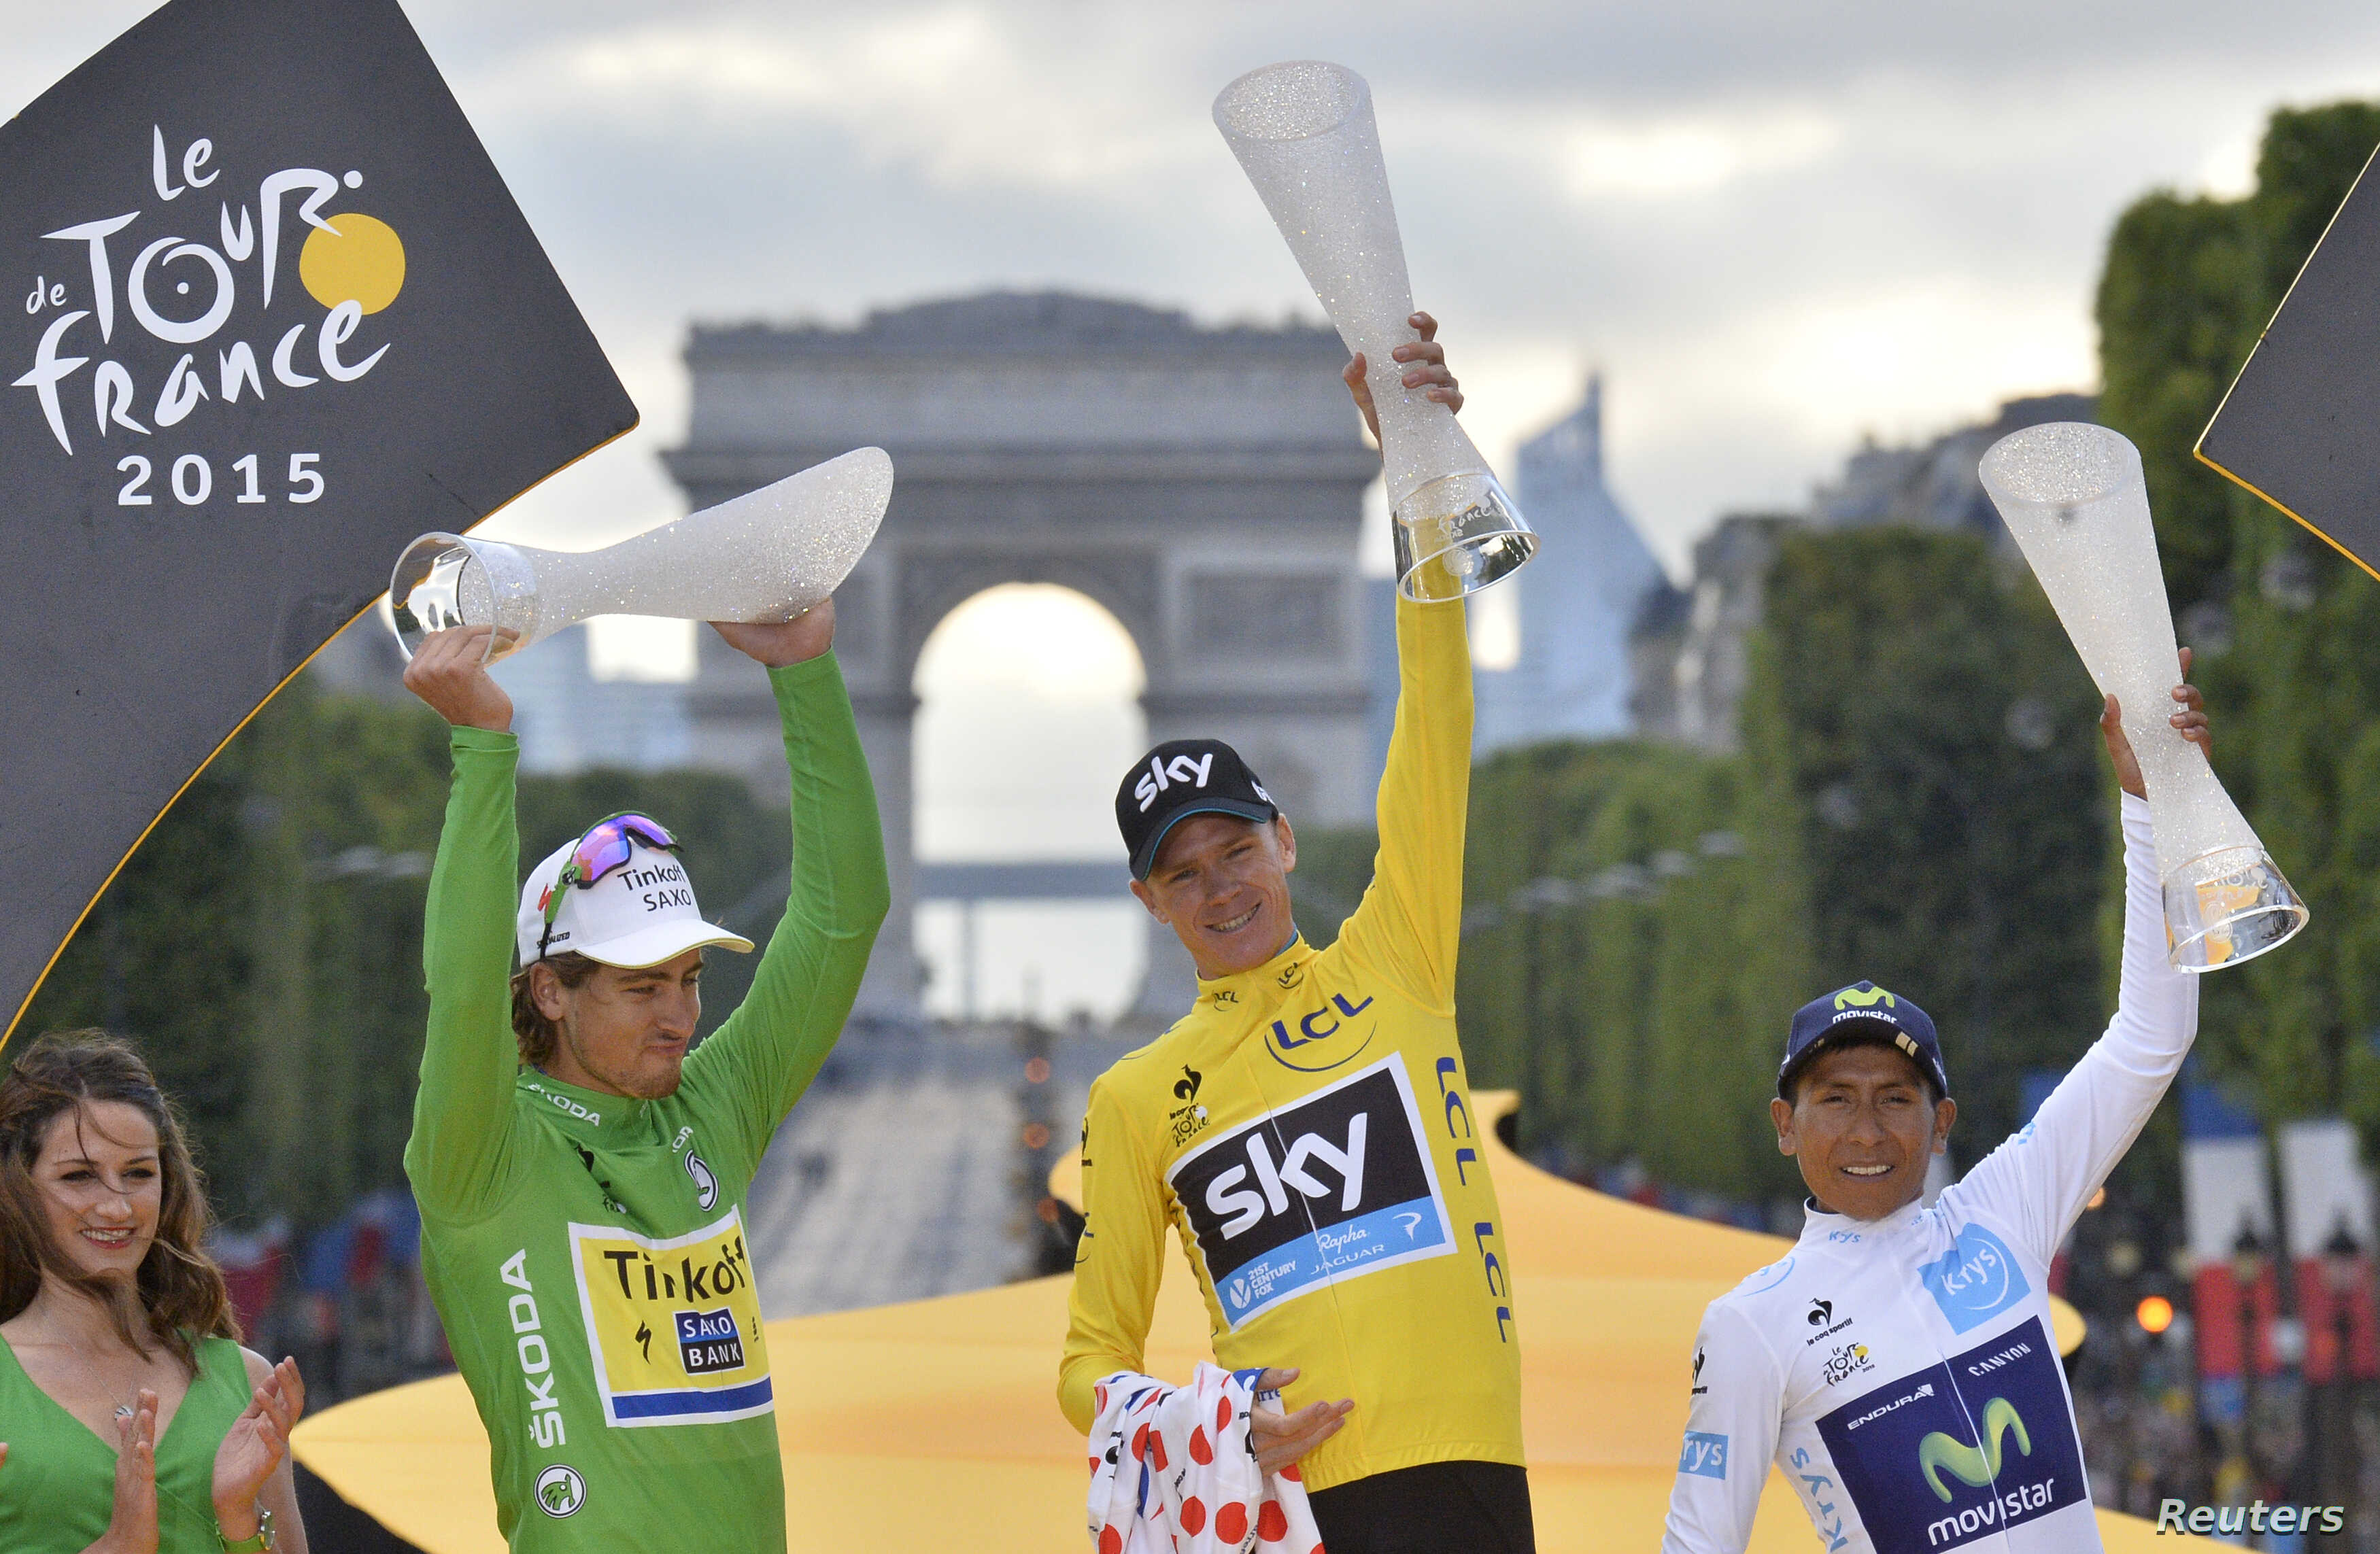 Chris Froome, center, celebrates his overall victory on the podium with Peter Sagan of Slovakia, left, holder of the best sprinter's green jersey, and Nairo Quintana of Colombia, holder of the best young rider's white jersey, after the final stage of